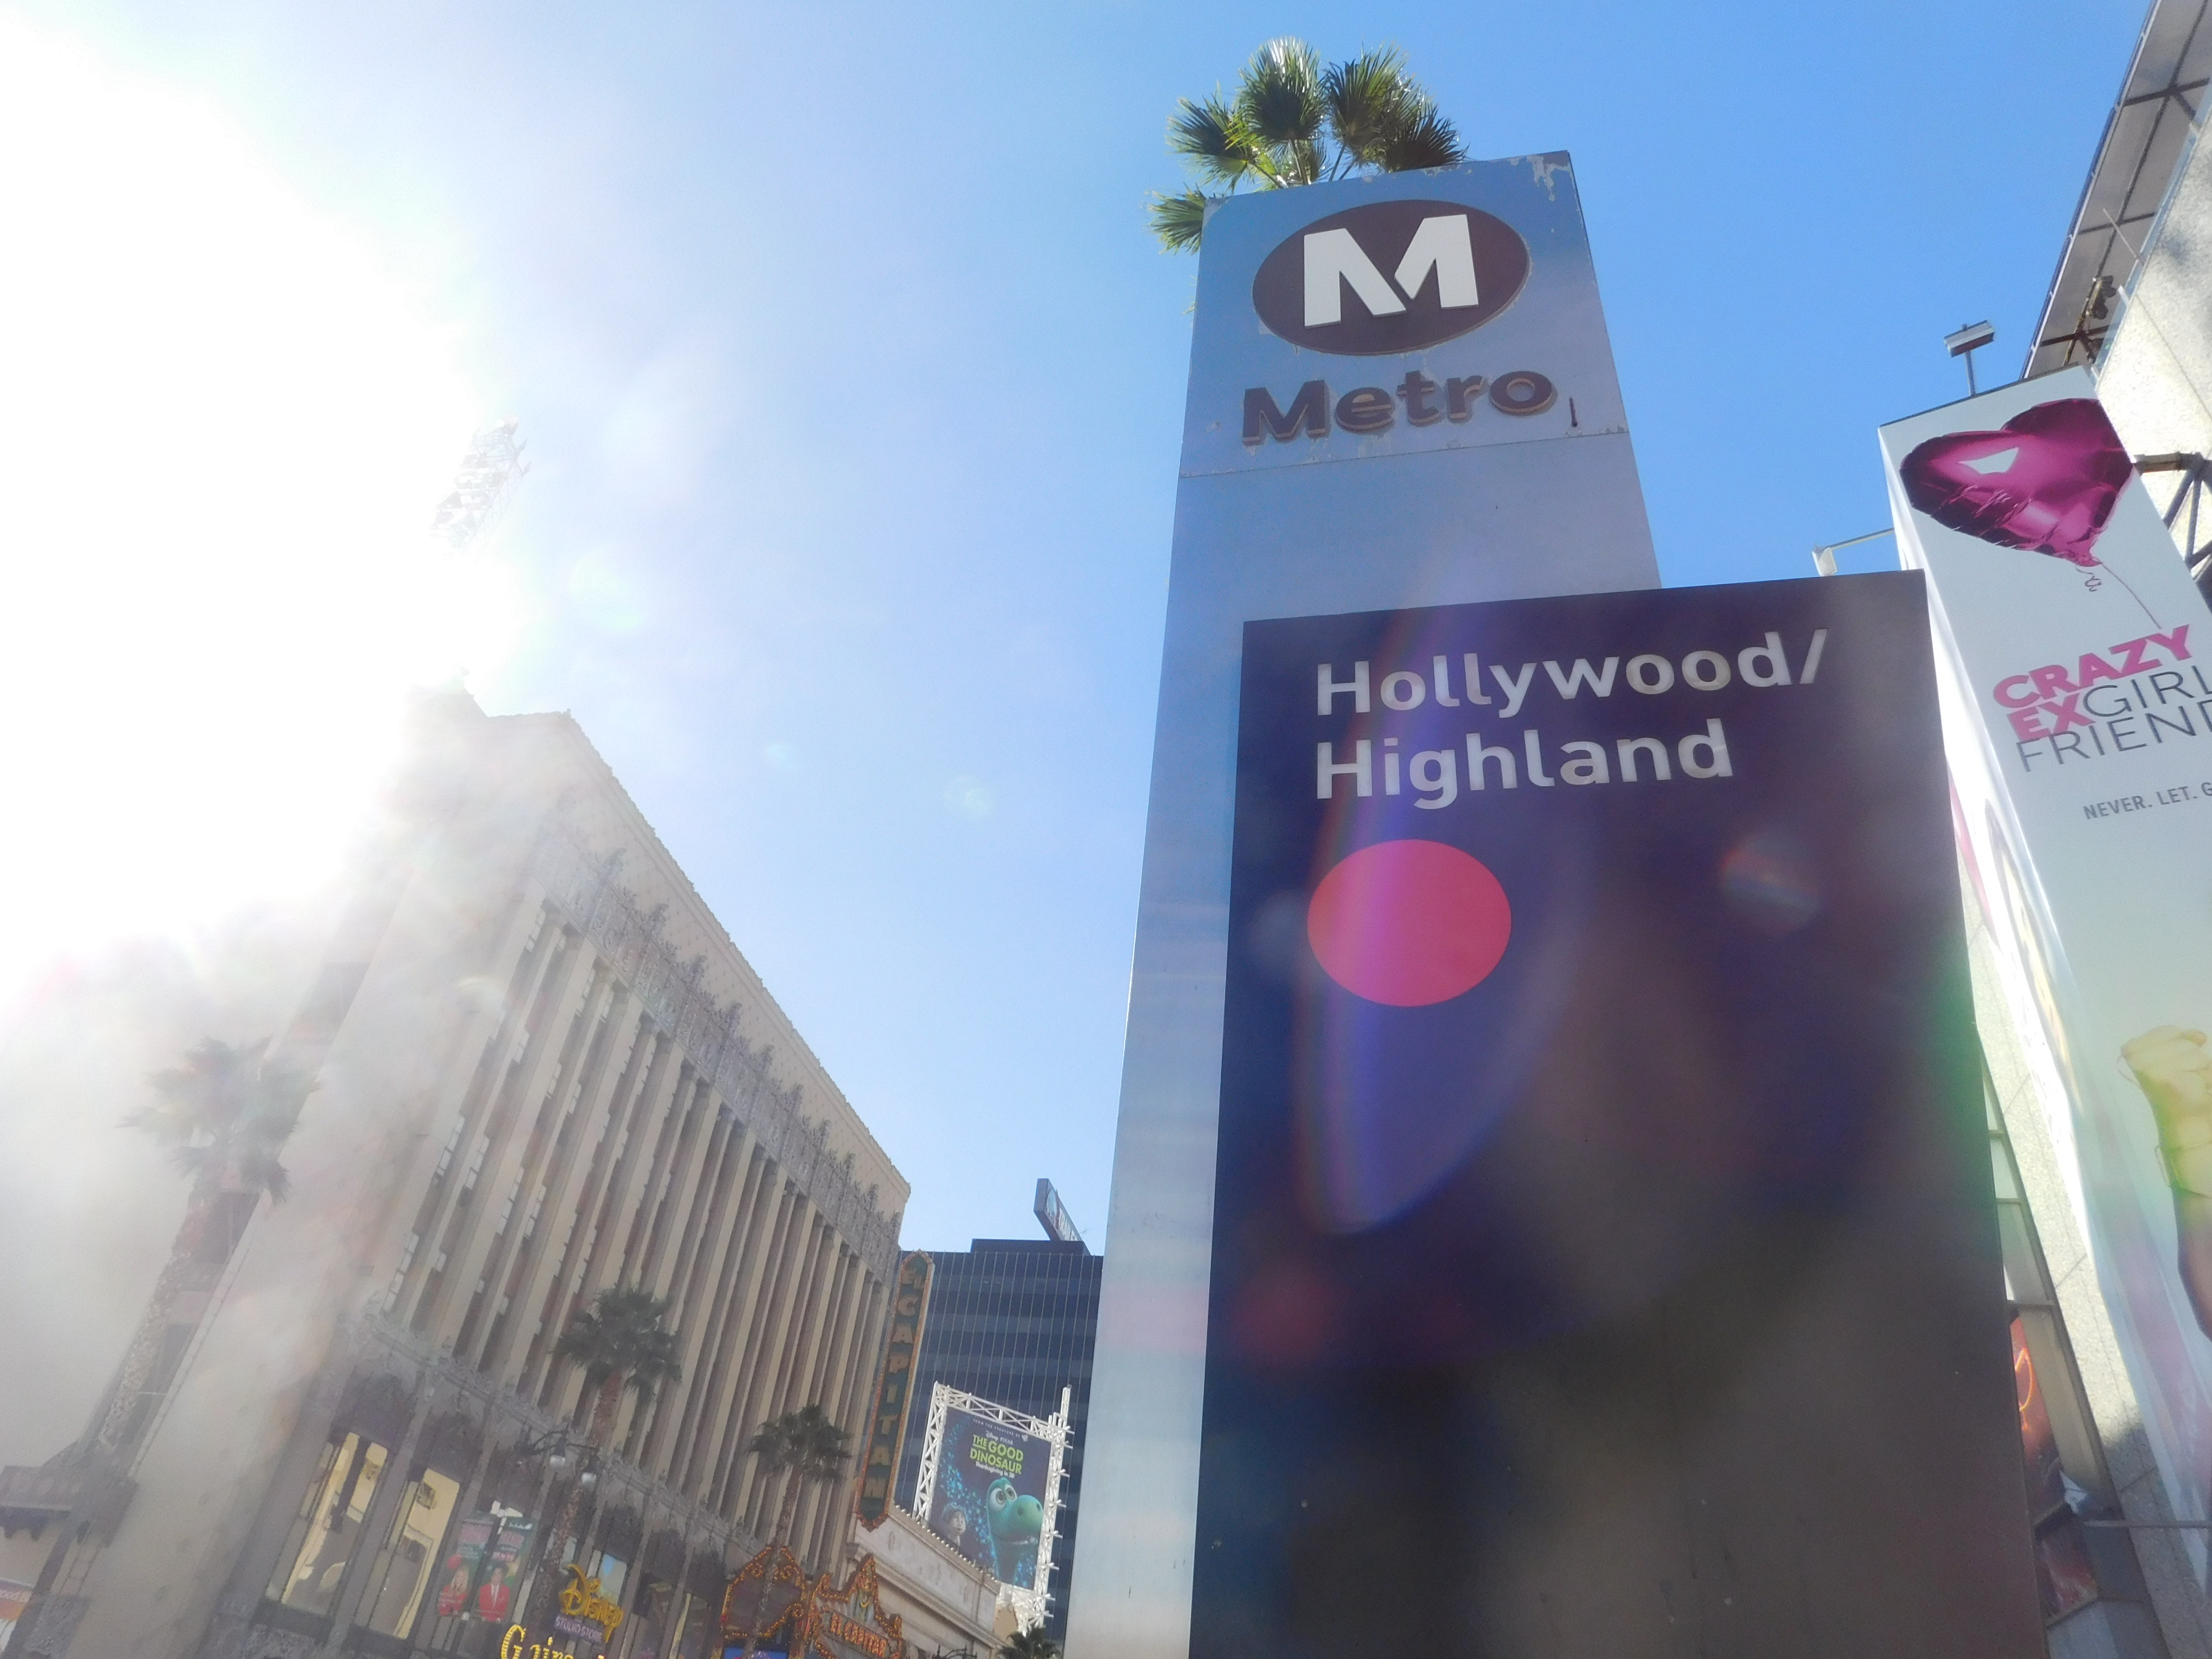 The Oscars Bus Detours And Hollywood Highland Station